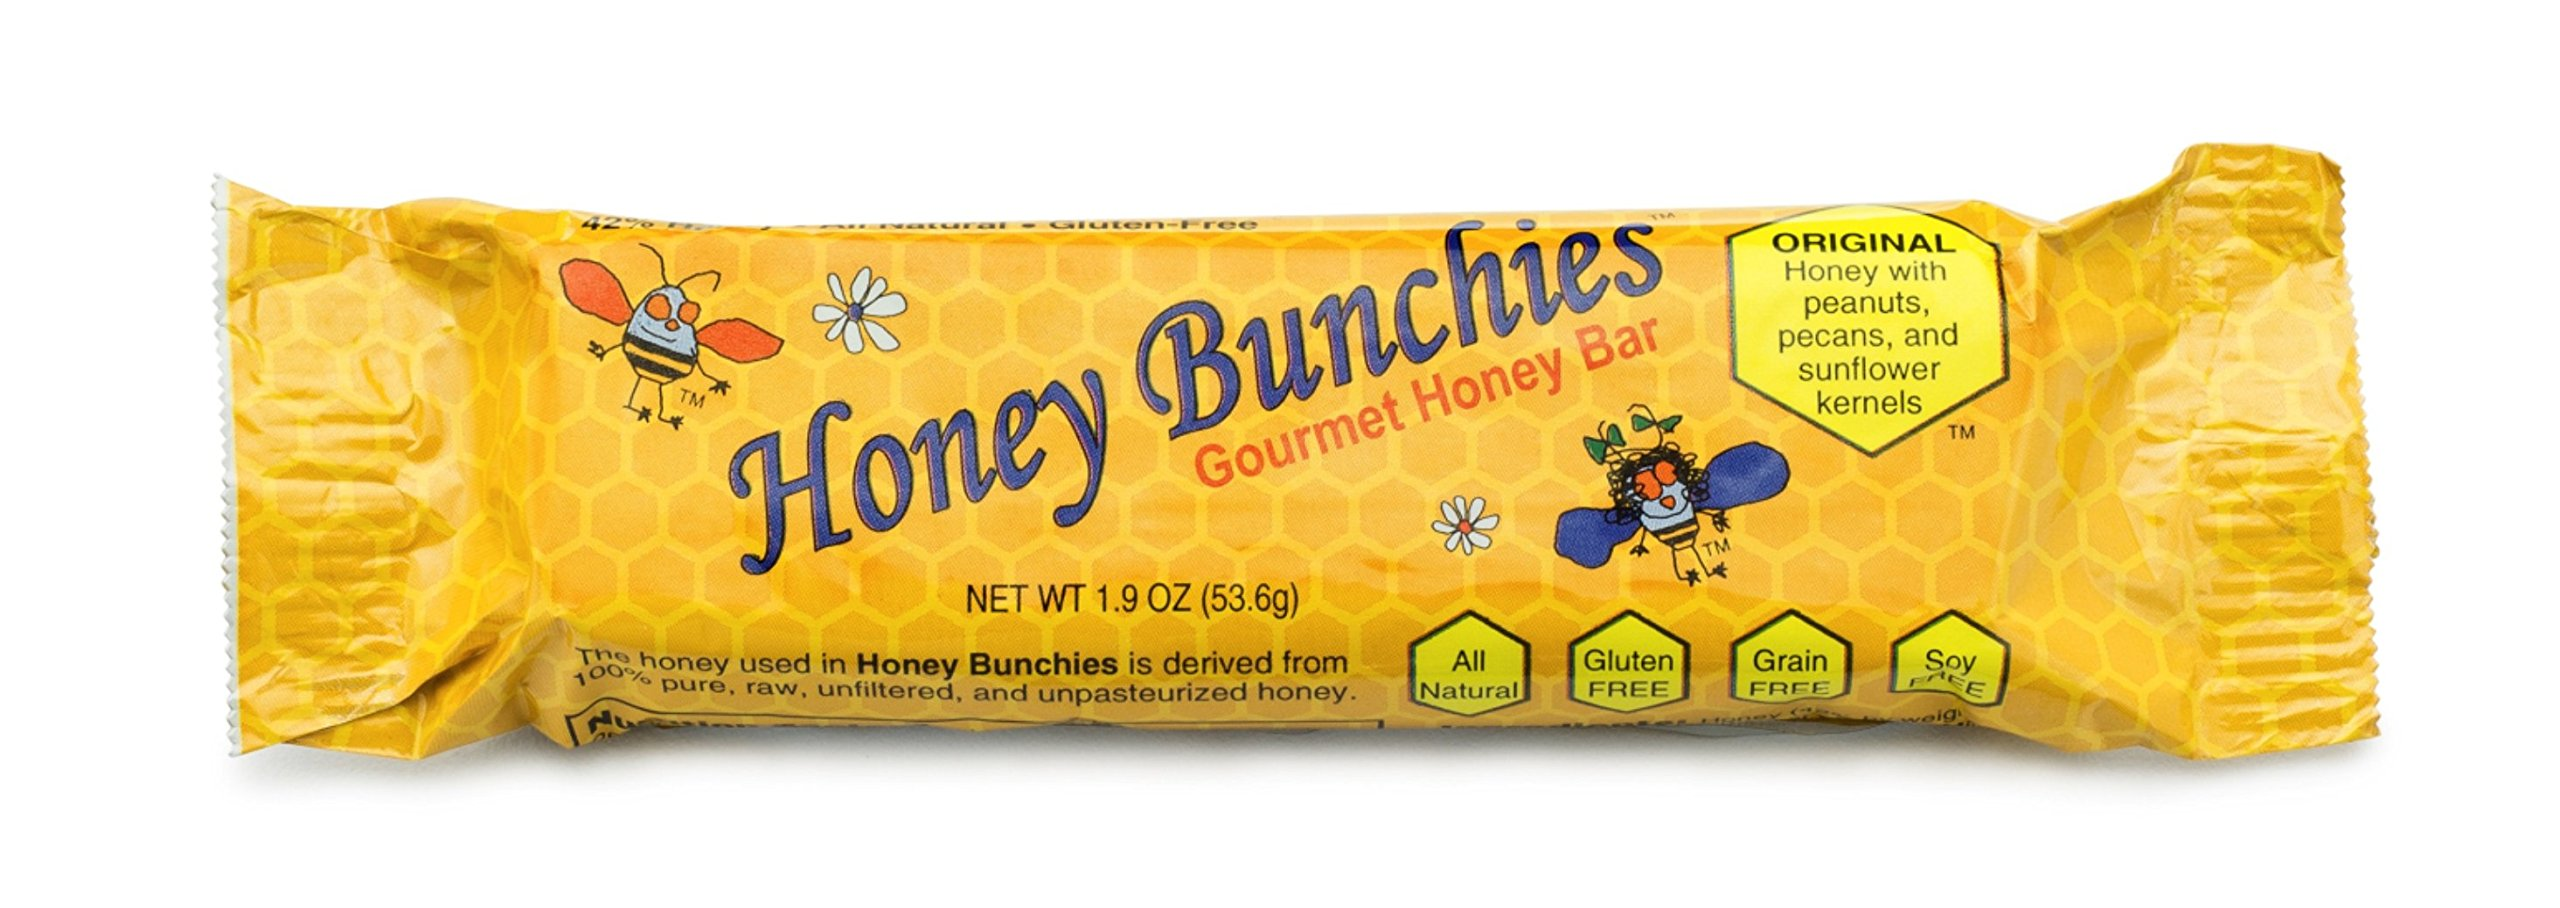 All-Natural Gourmet Honey Bars by Honey Bunchies (10 pack) - Nutritious and Delicious Pure Honey, Peanut, Sunflower Kernel, Pecan - Gluten-Free, Soy-Free, Grain-Free Snack for Energy or Workout by Honey Bunchies (Image #2)